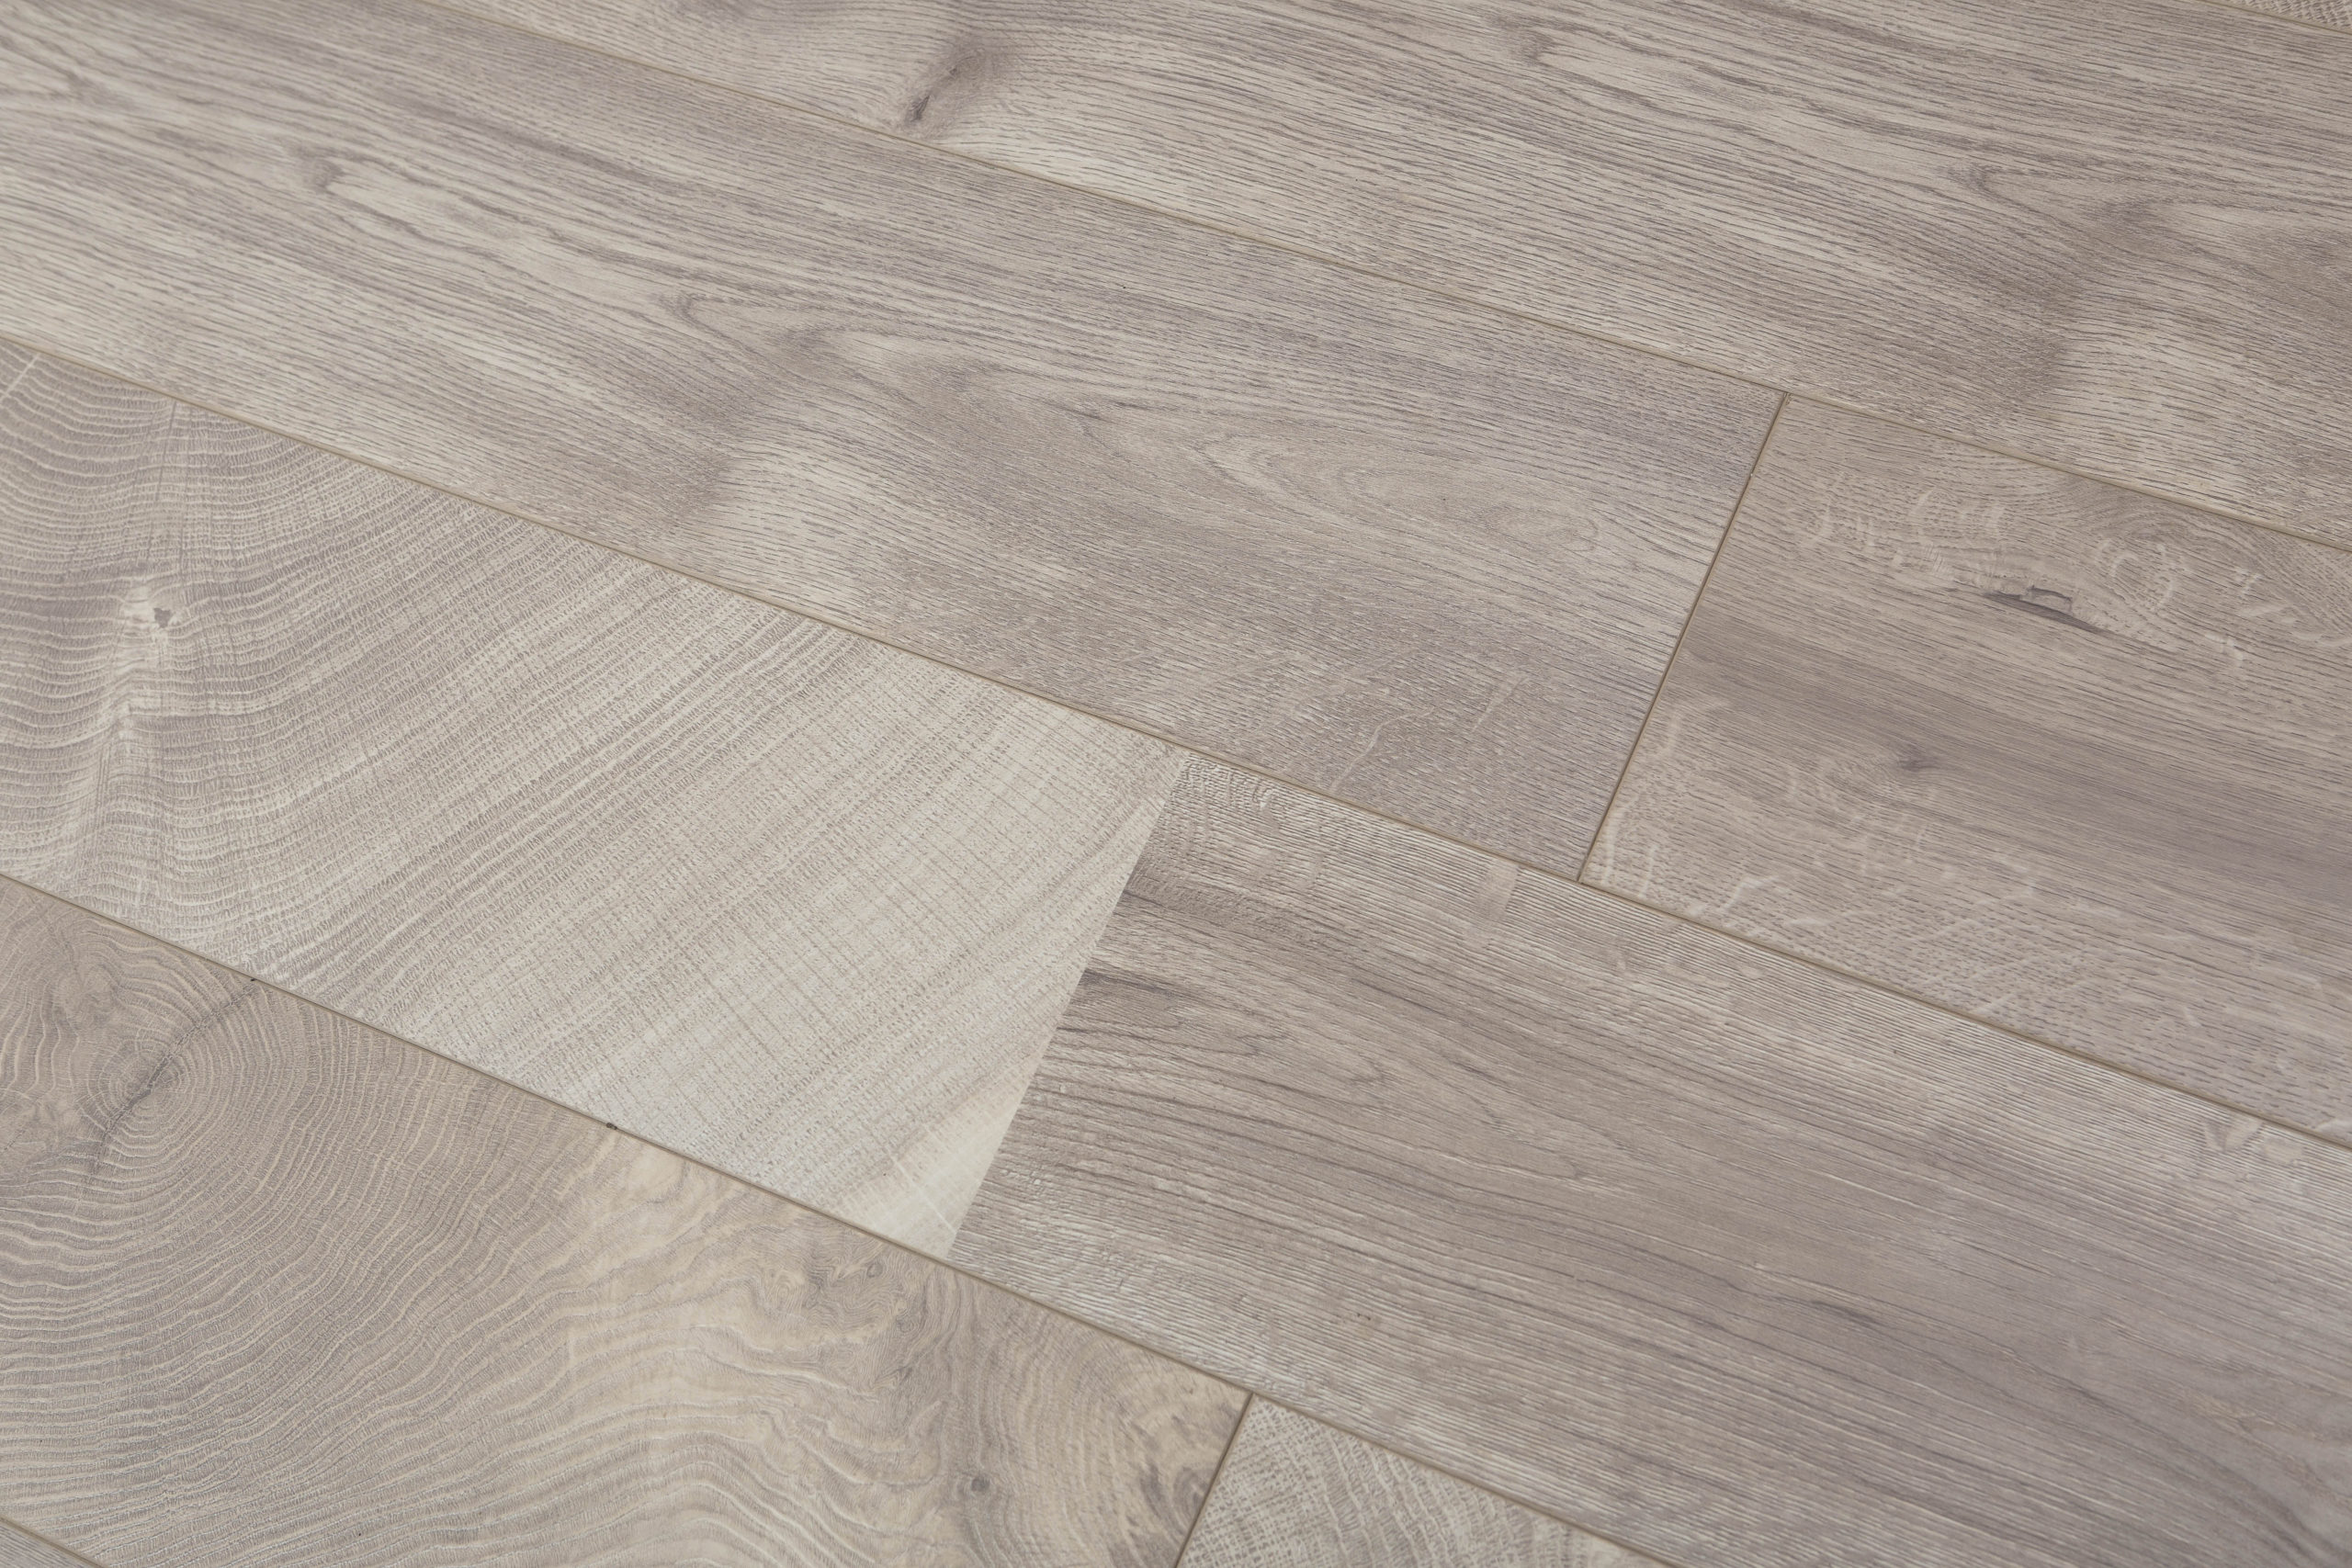 Toucan Laminate Flooring 7 1 2 Inch Wide With Thickness Of 12mm